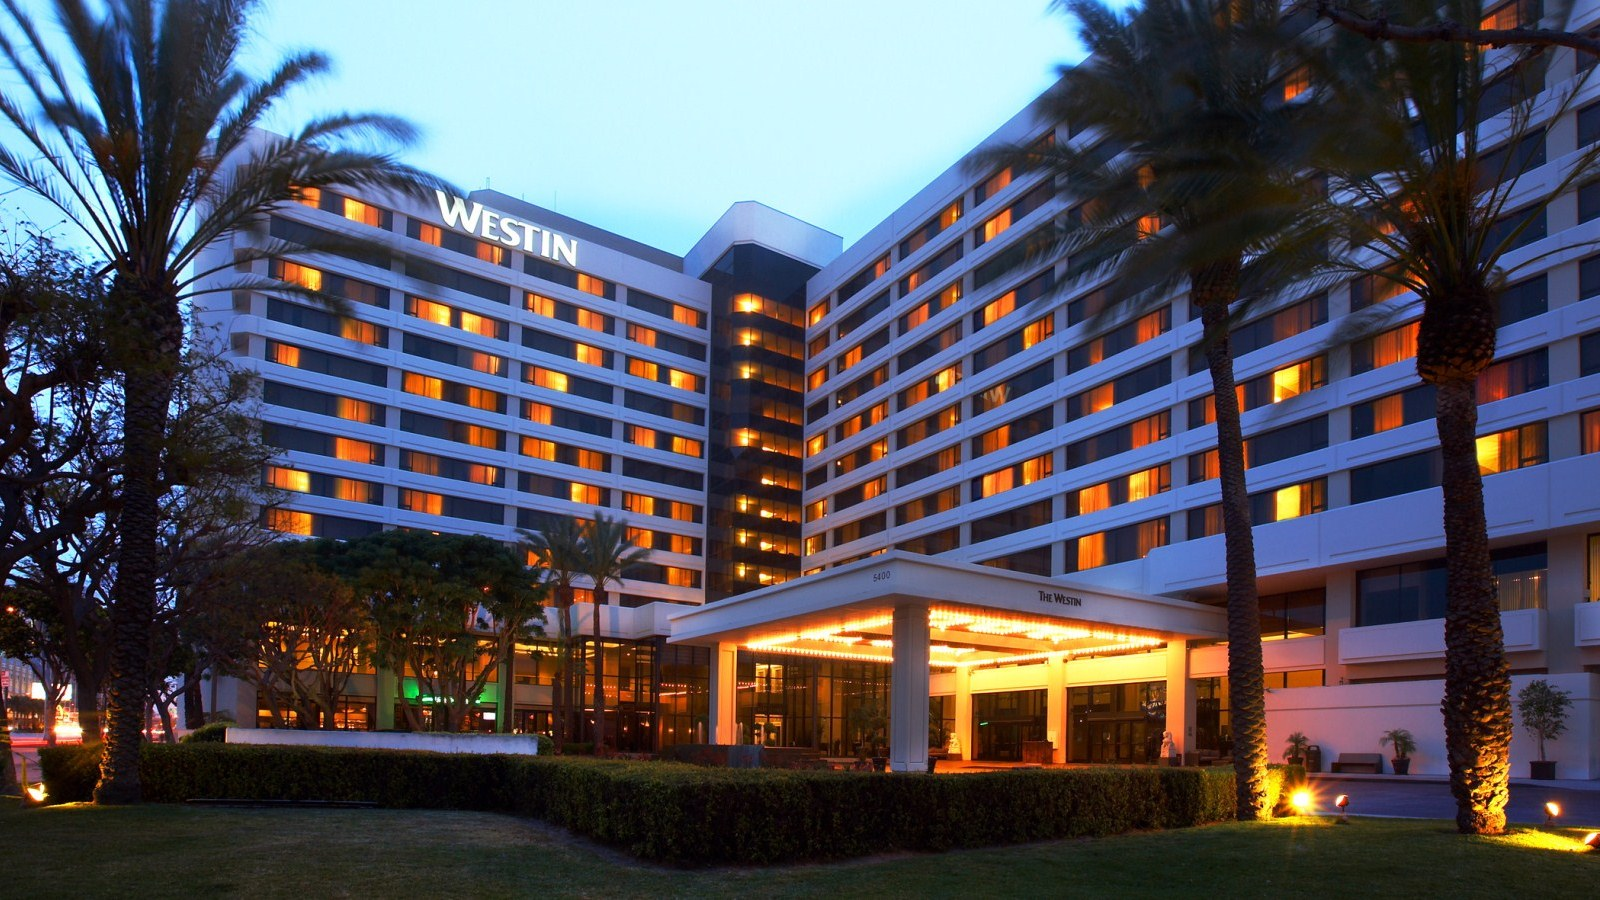 Westin Los Angeles Airport Hotel